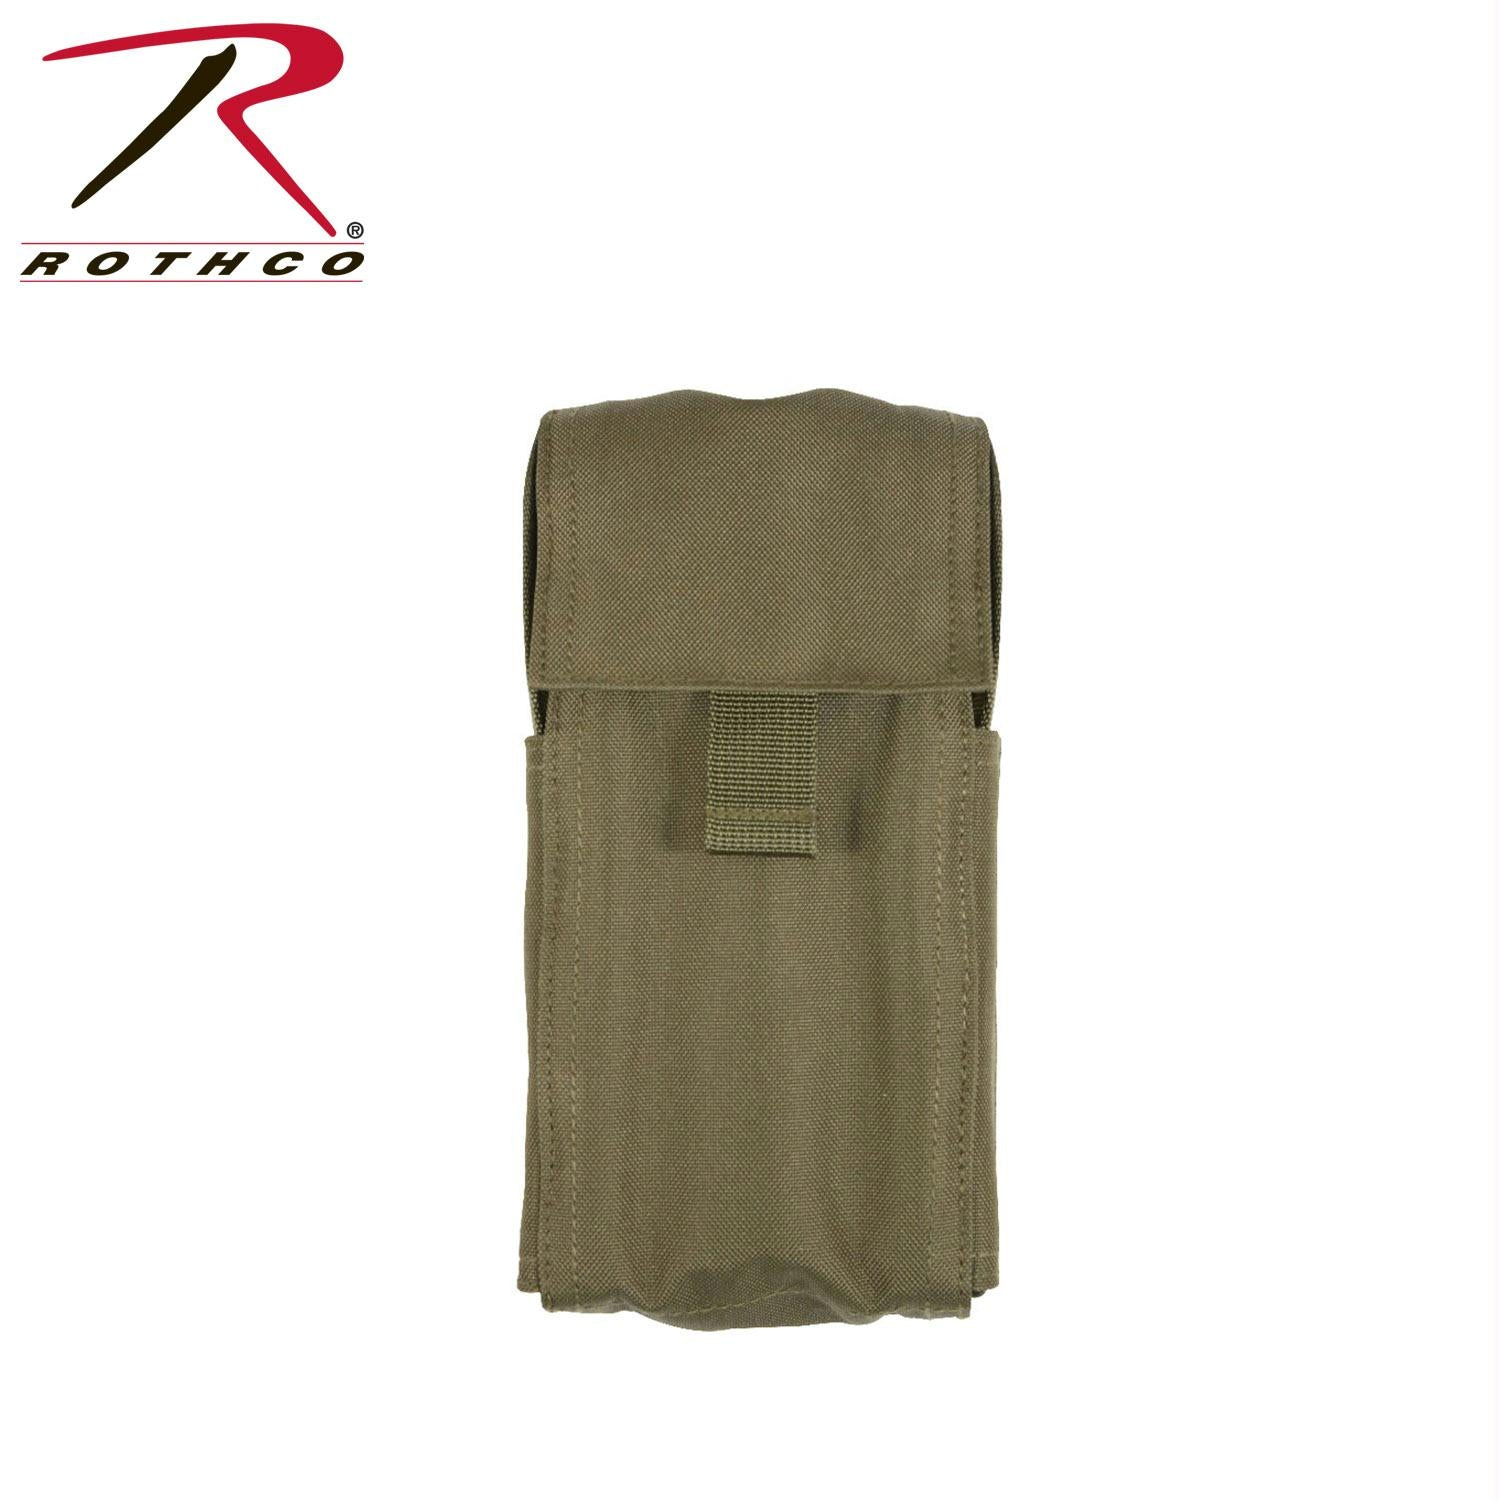 Rothco Molle Shotgun / Airsoft Ammo Pouch - Olive Drab